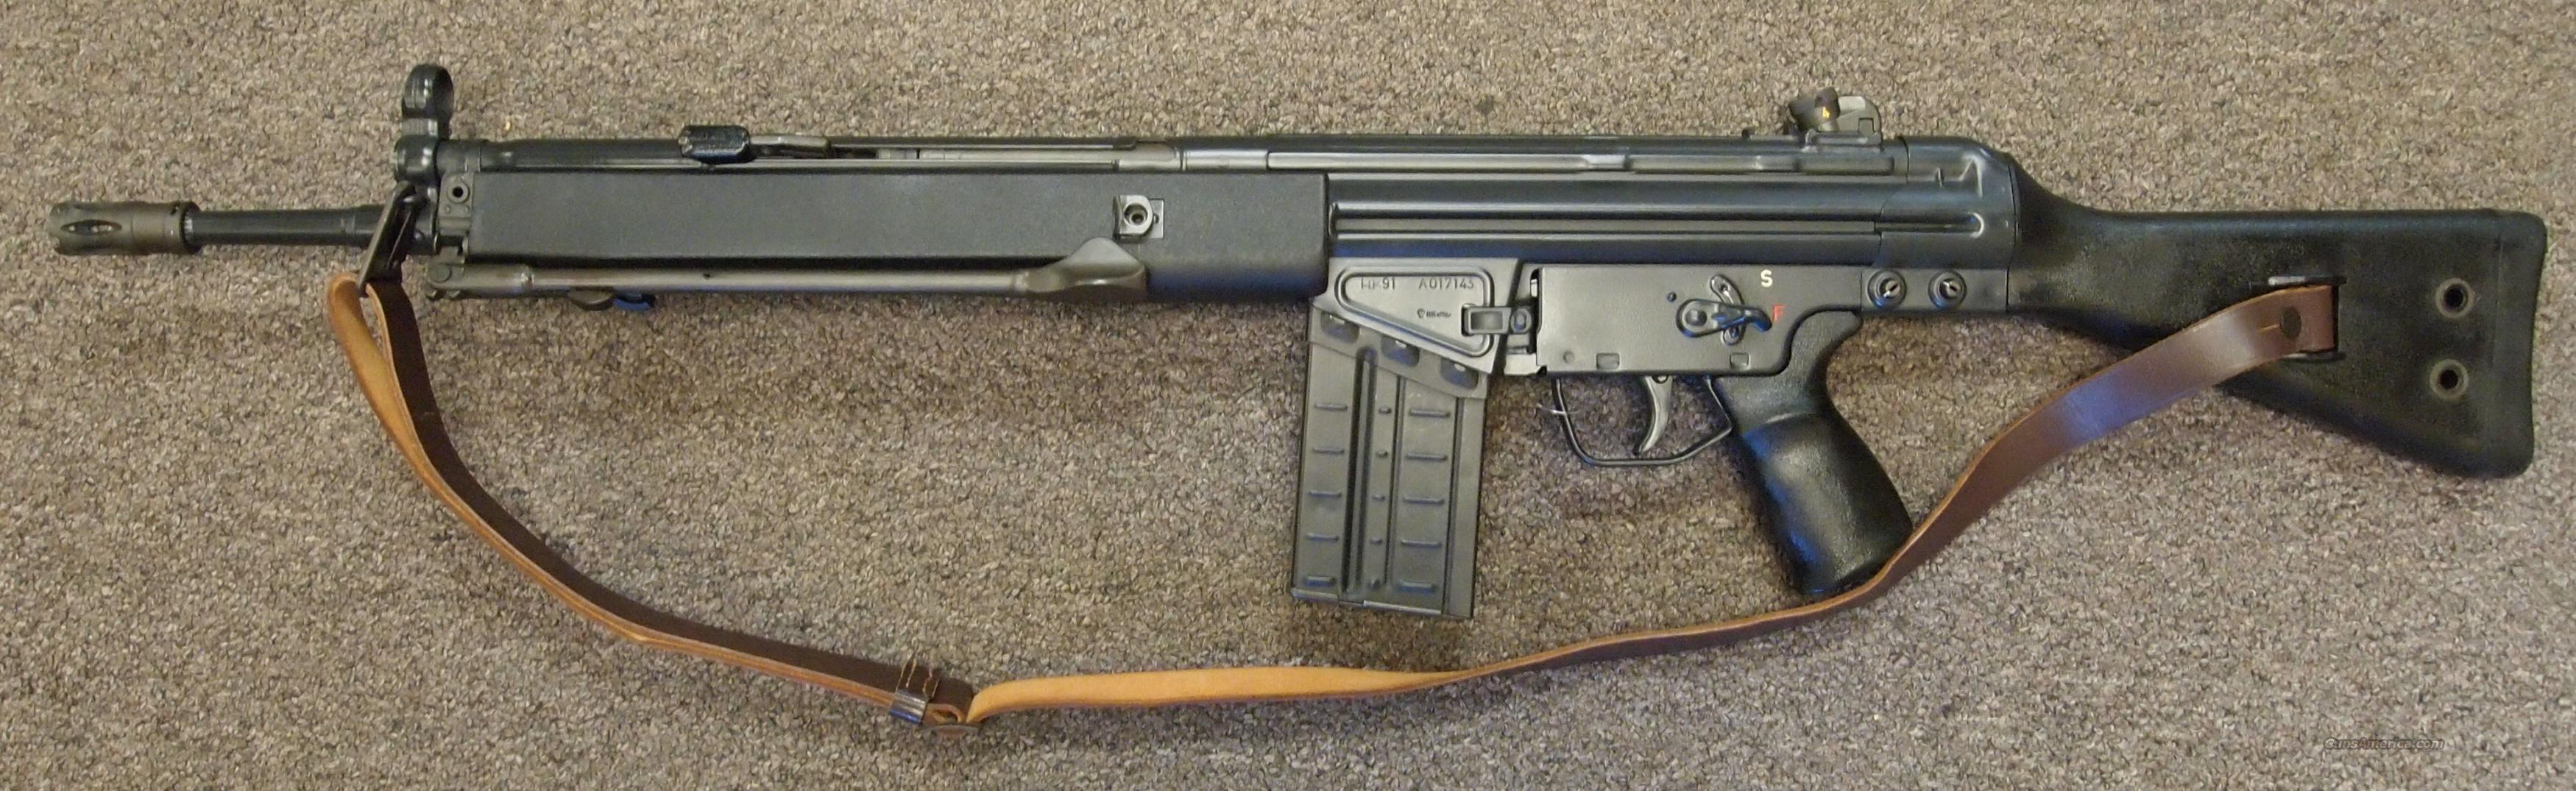 HK 91 .308  Guns > Rifles > Heckler & Koch Rifles > Tactical